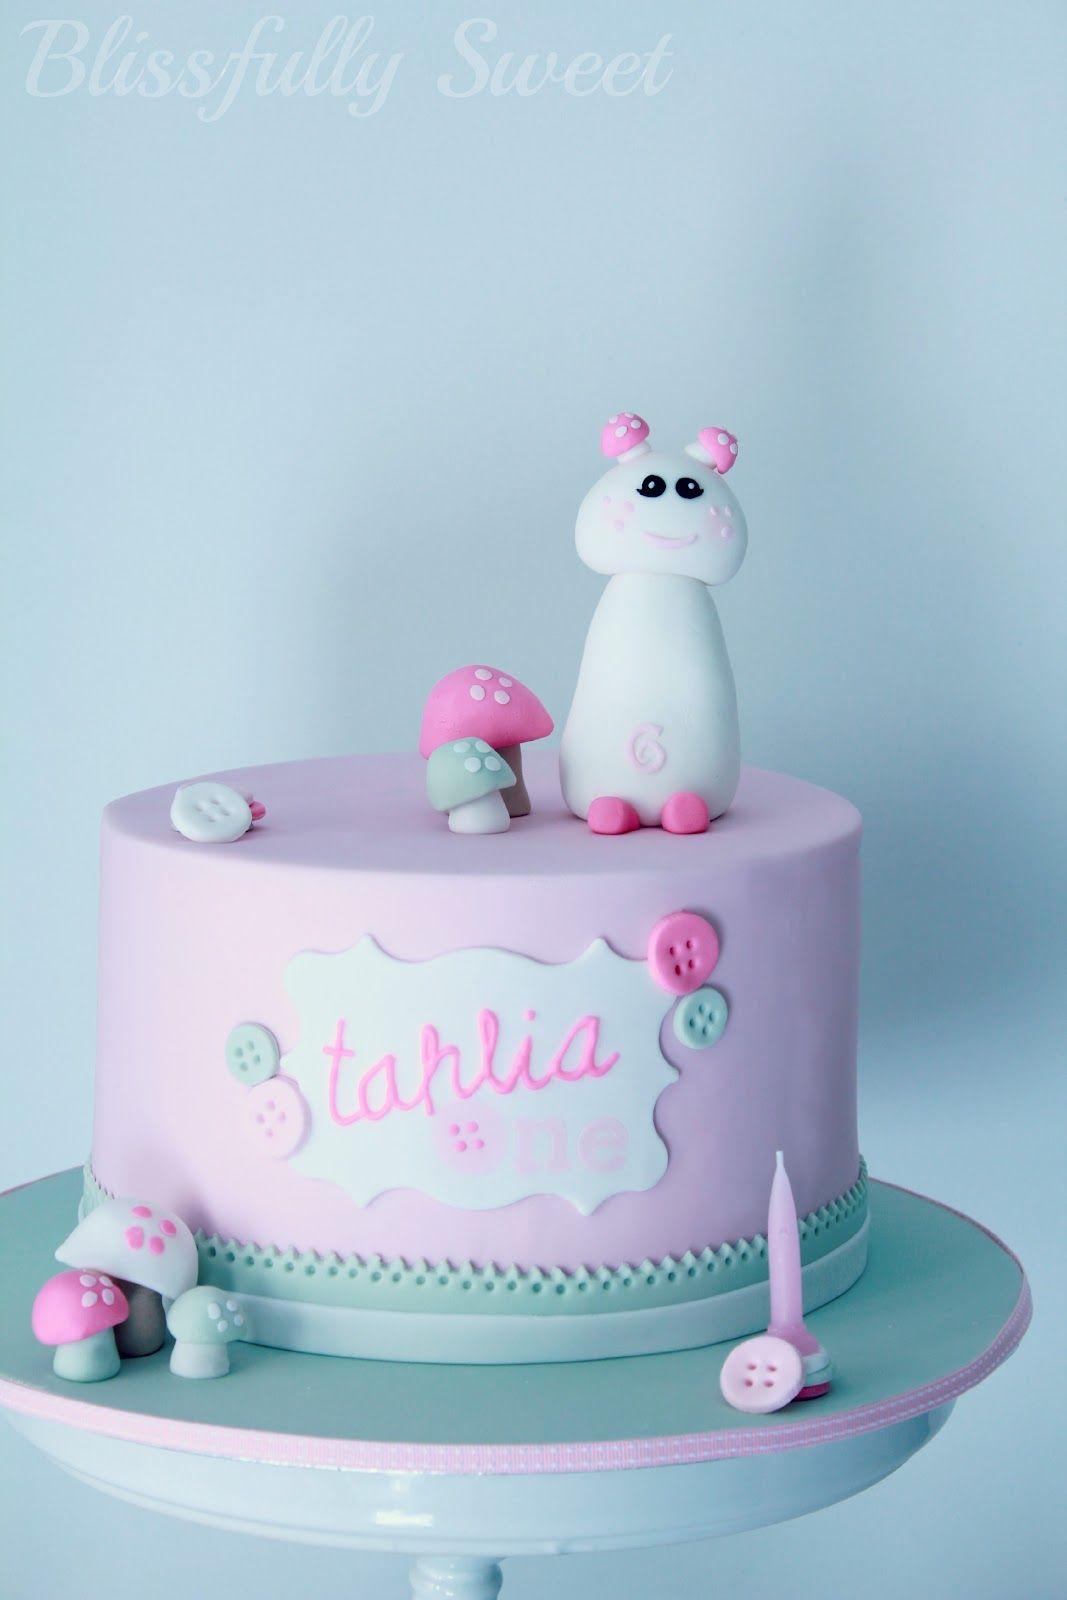 Blissfully Sweet Cute As A Button Birthday Cake